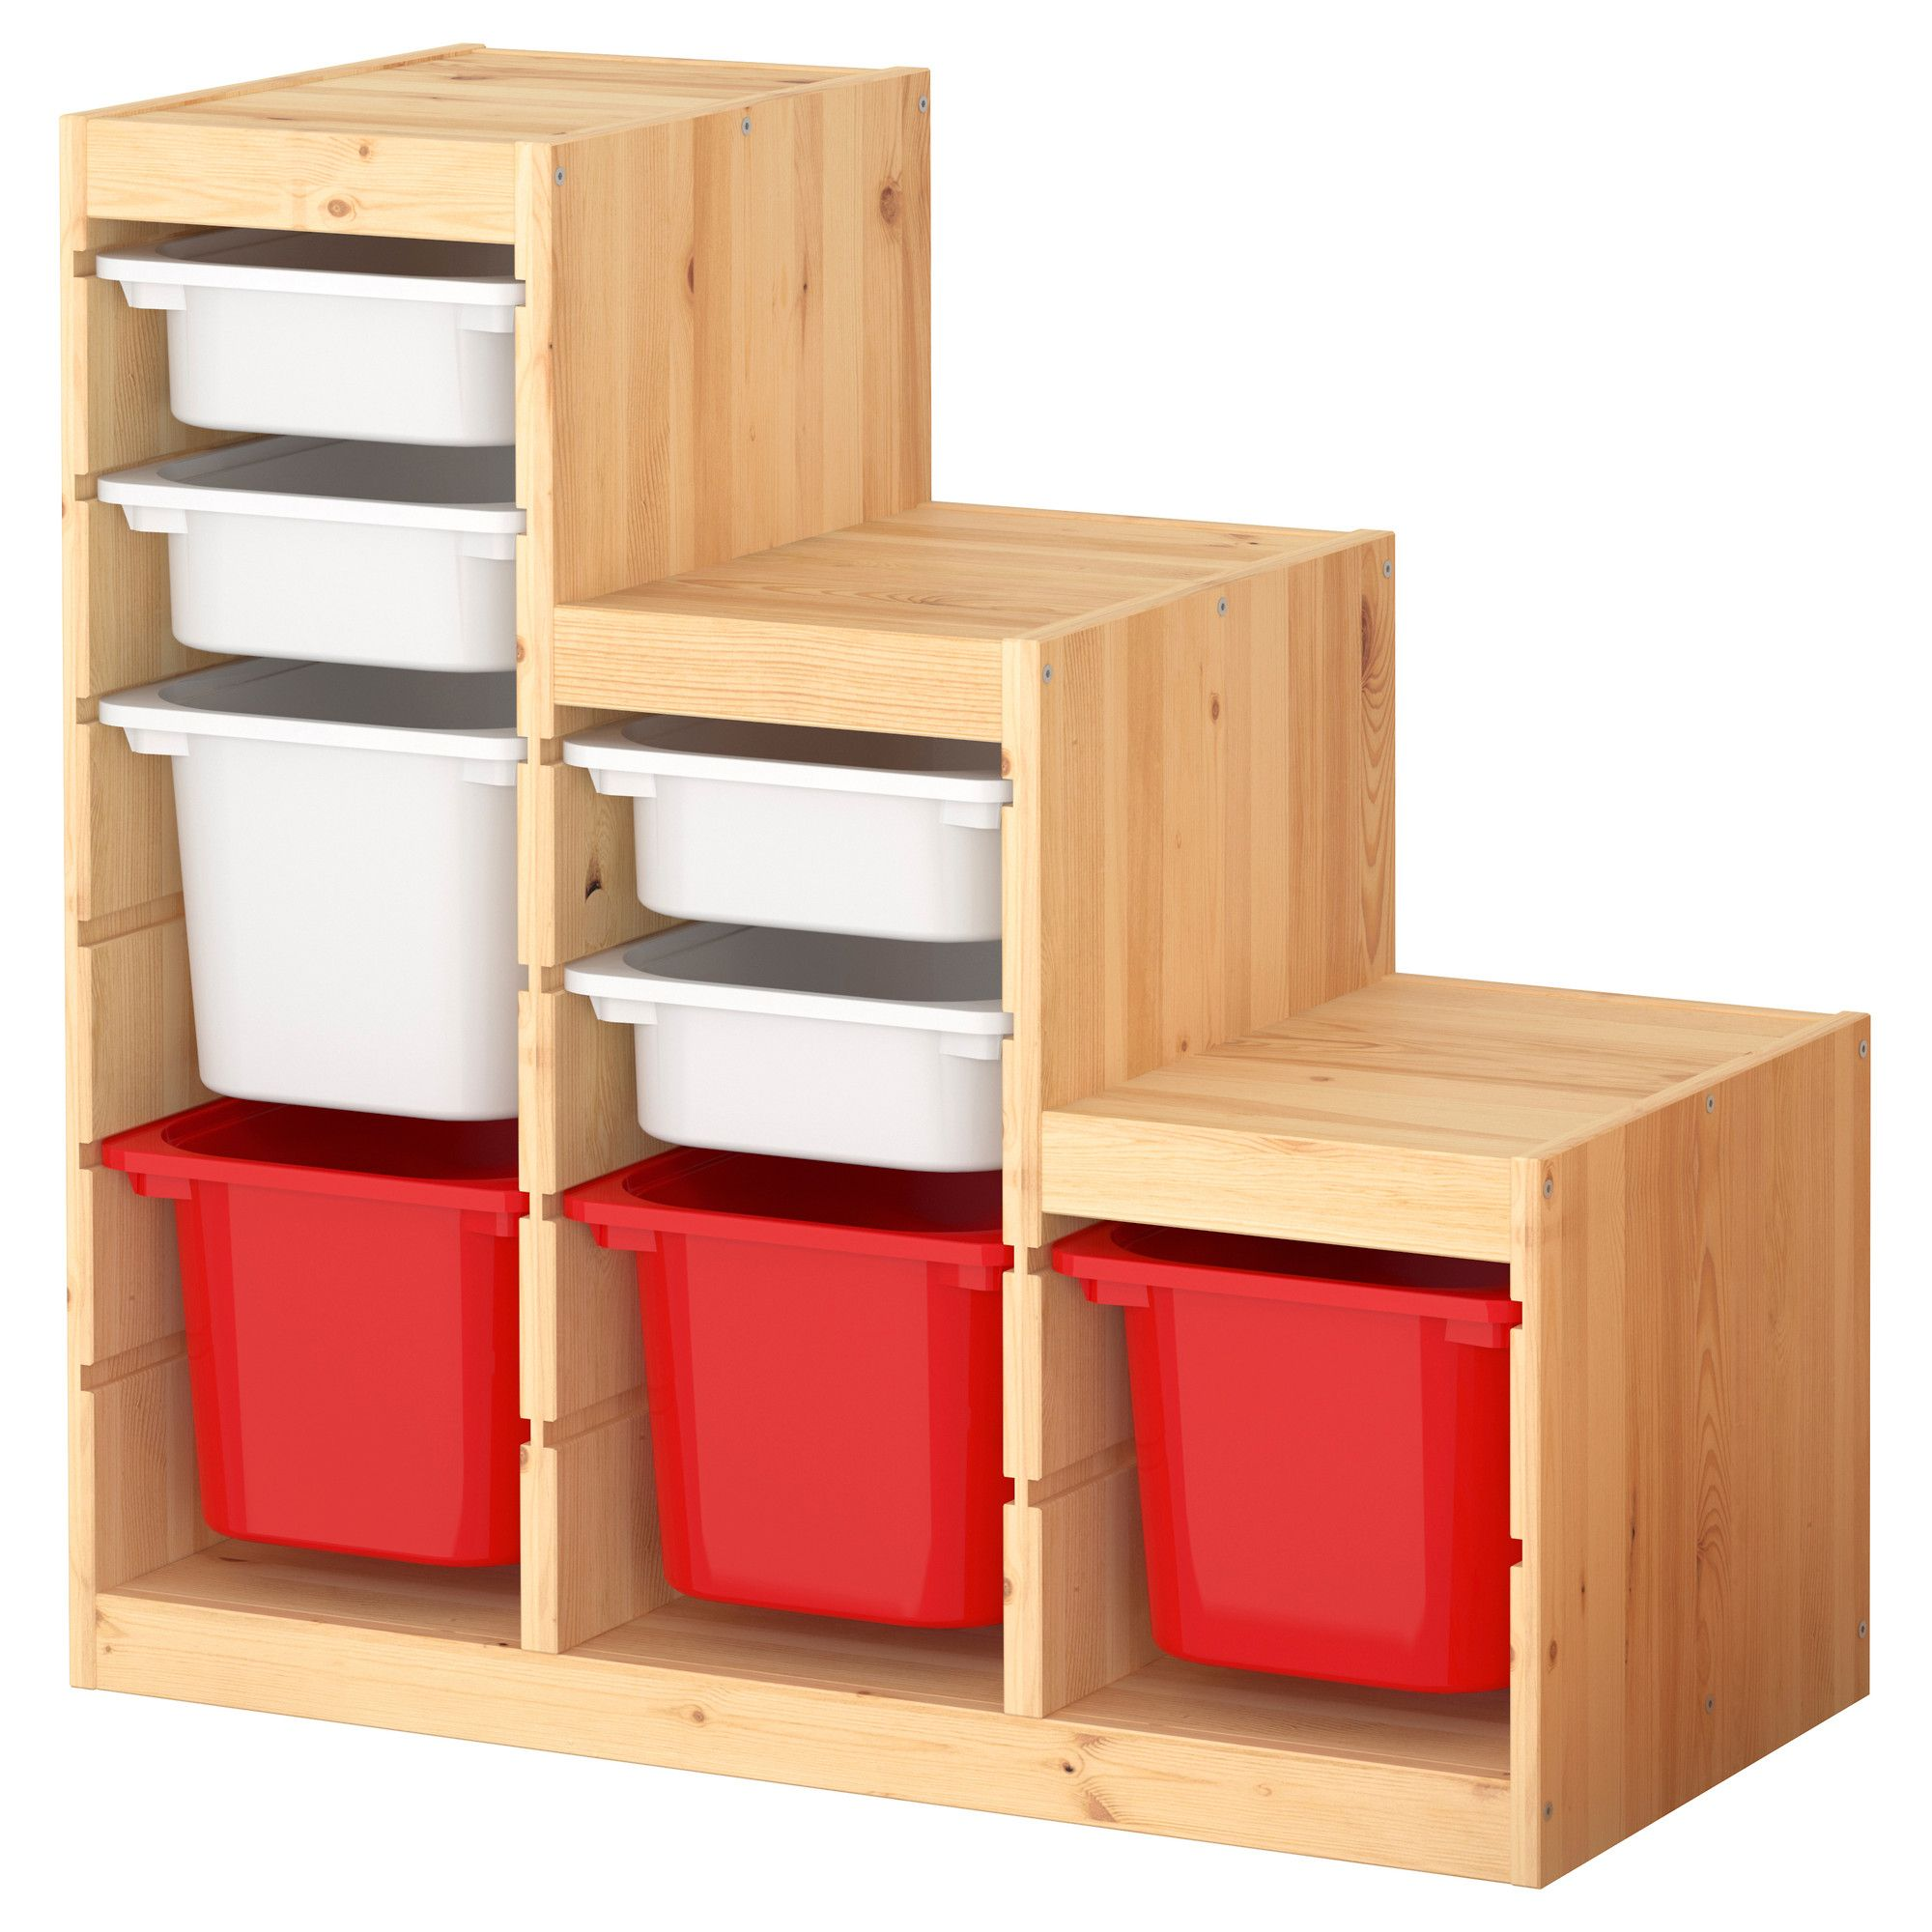 Trofast storage combination ikea article number for Ikea box shelf unit